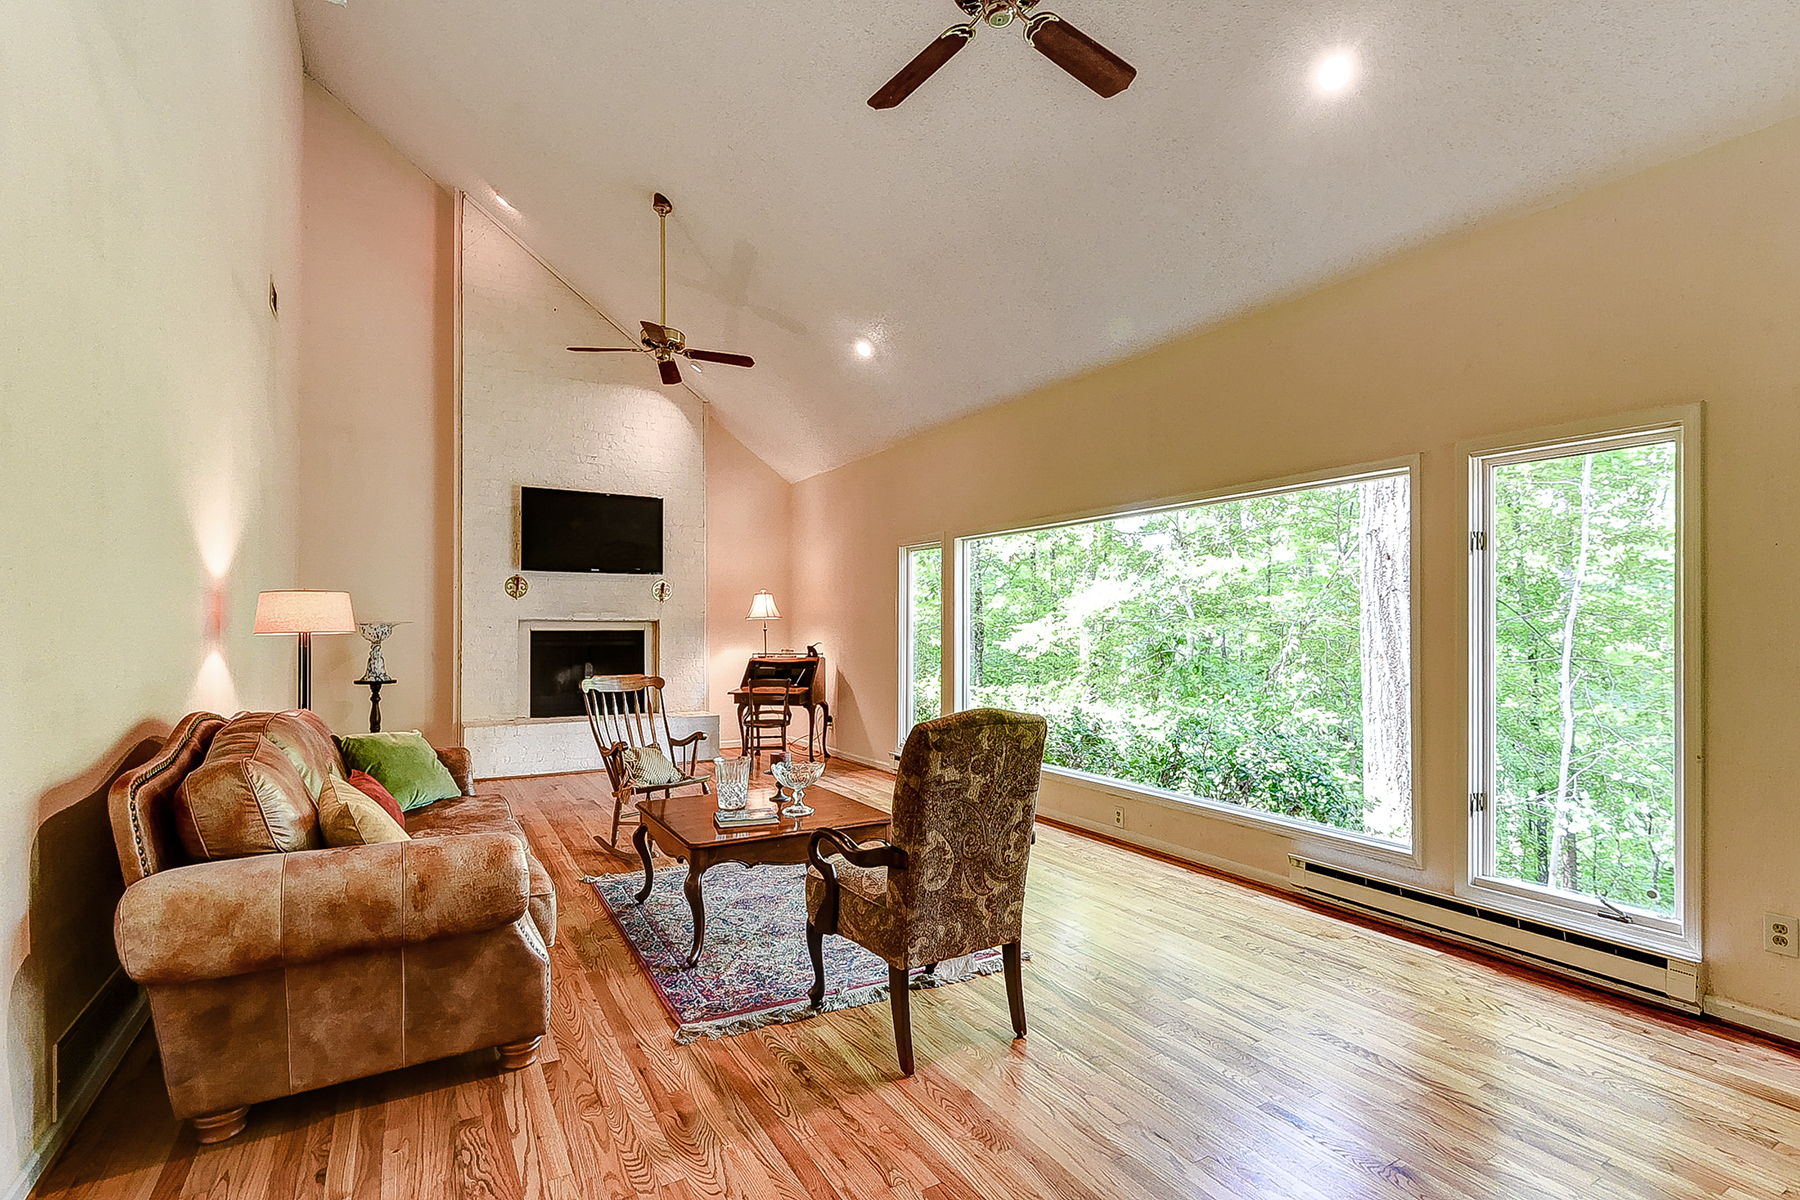 Single Family Home for Sale at Nestled In The Woods 165 River Court Parkway Atlanta, Georgia 30328 United States